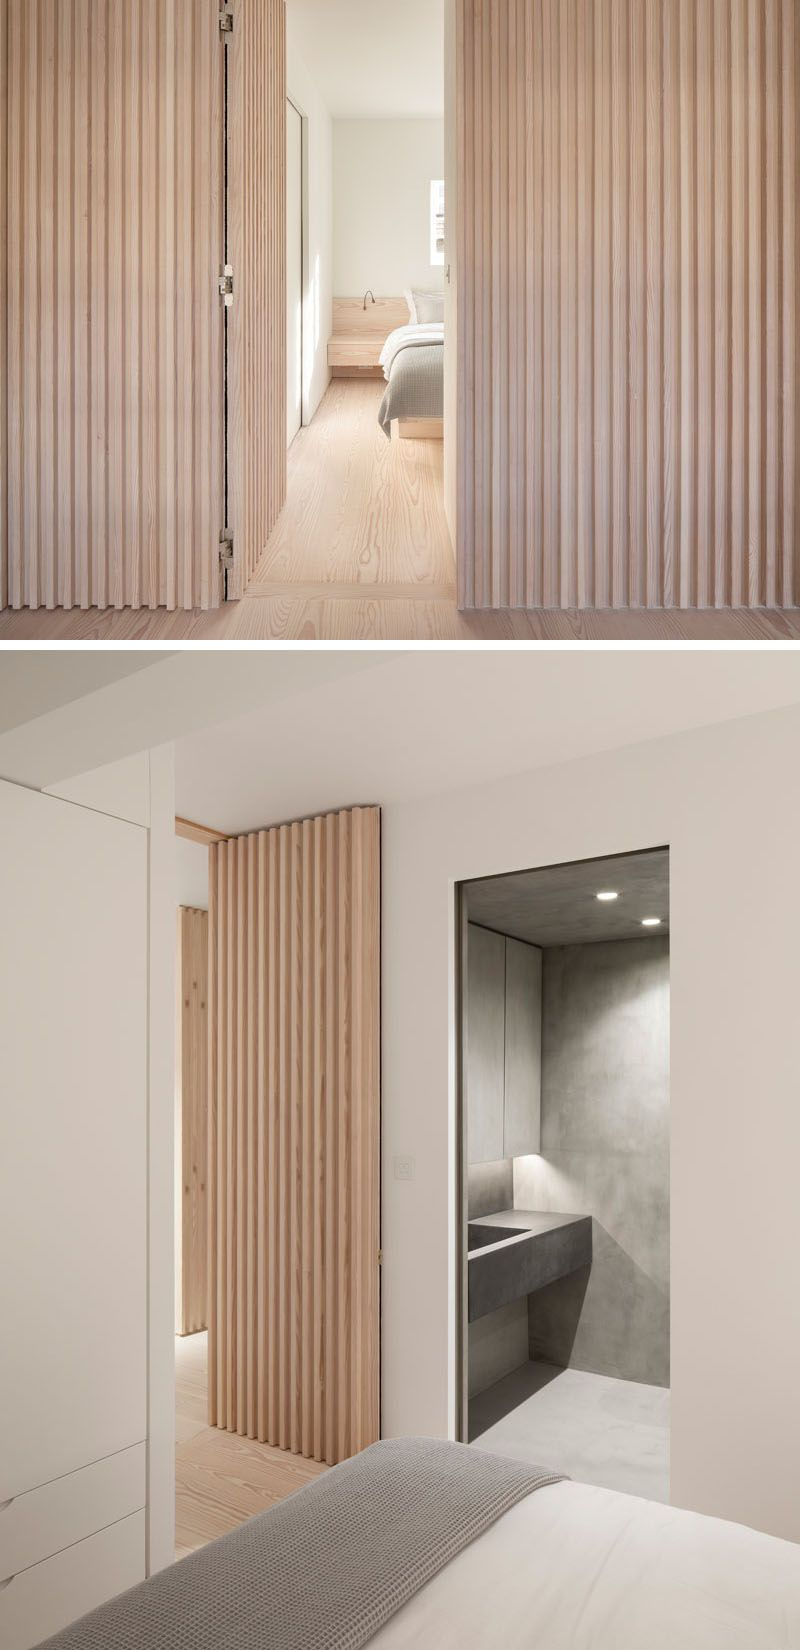 Interior Design Ideas This Wood Batten Wall Provides A Hiding Place For Doors And Appliances Doors Interior Modern Wood Slat Wall Modern Apartment